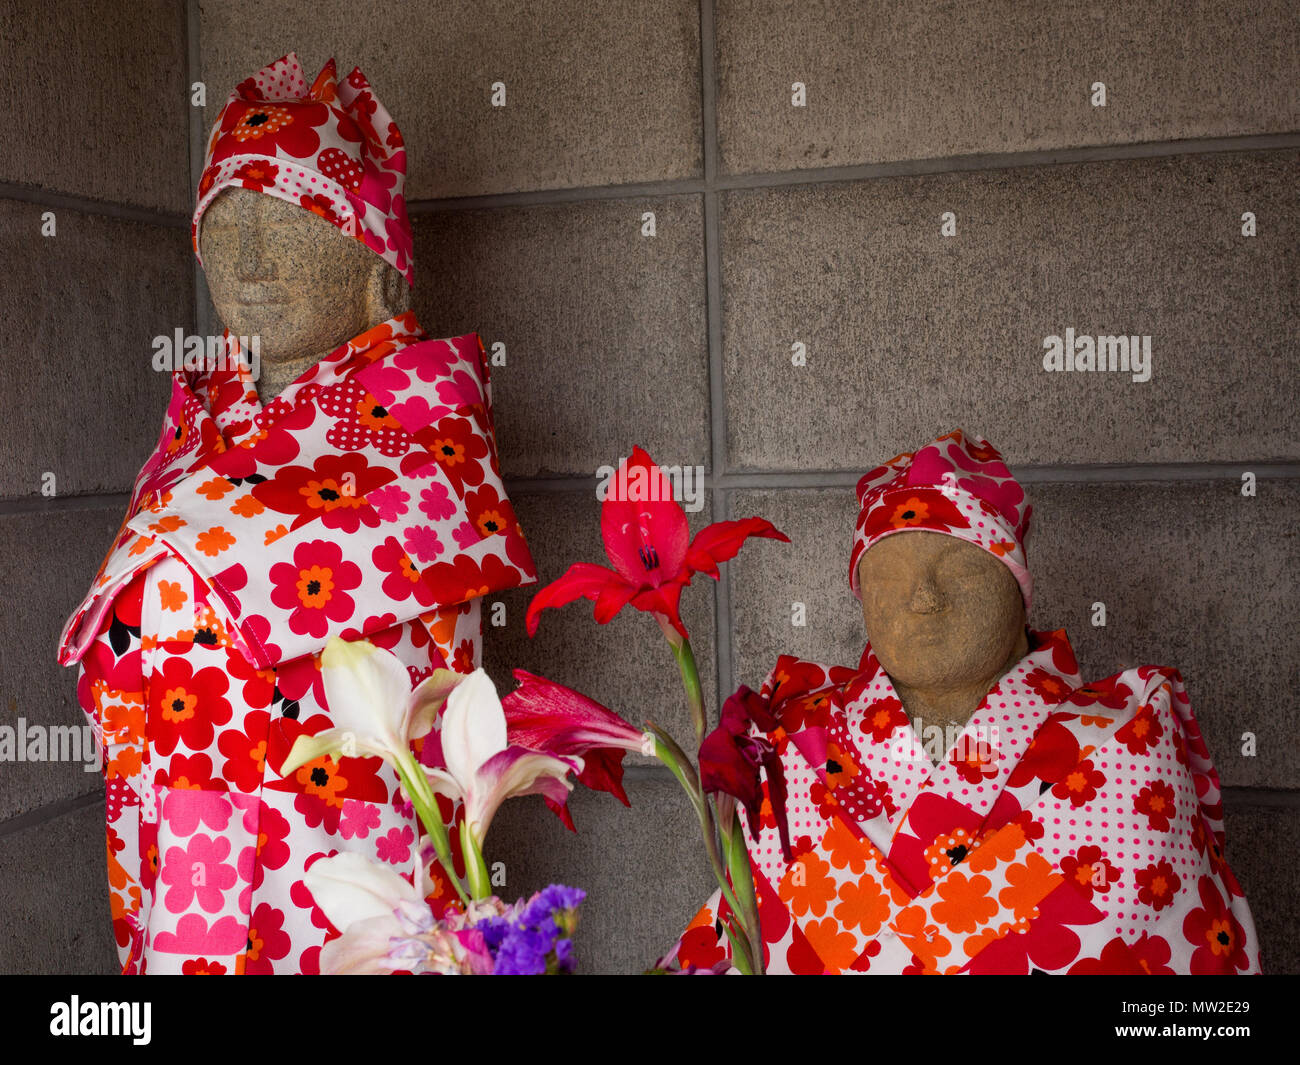 Buddhist statues, at a roadside shrine, robed in unusual patterned fabric, with flower offerings, Takamatsu, Shikoku, Japan - Stock Image